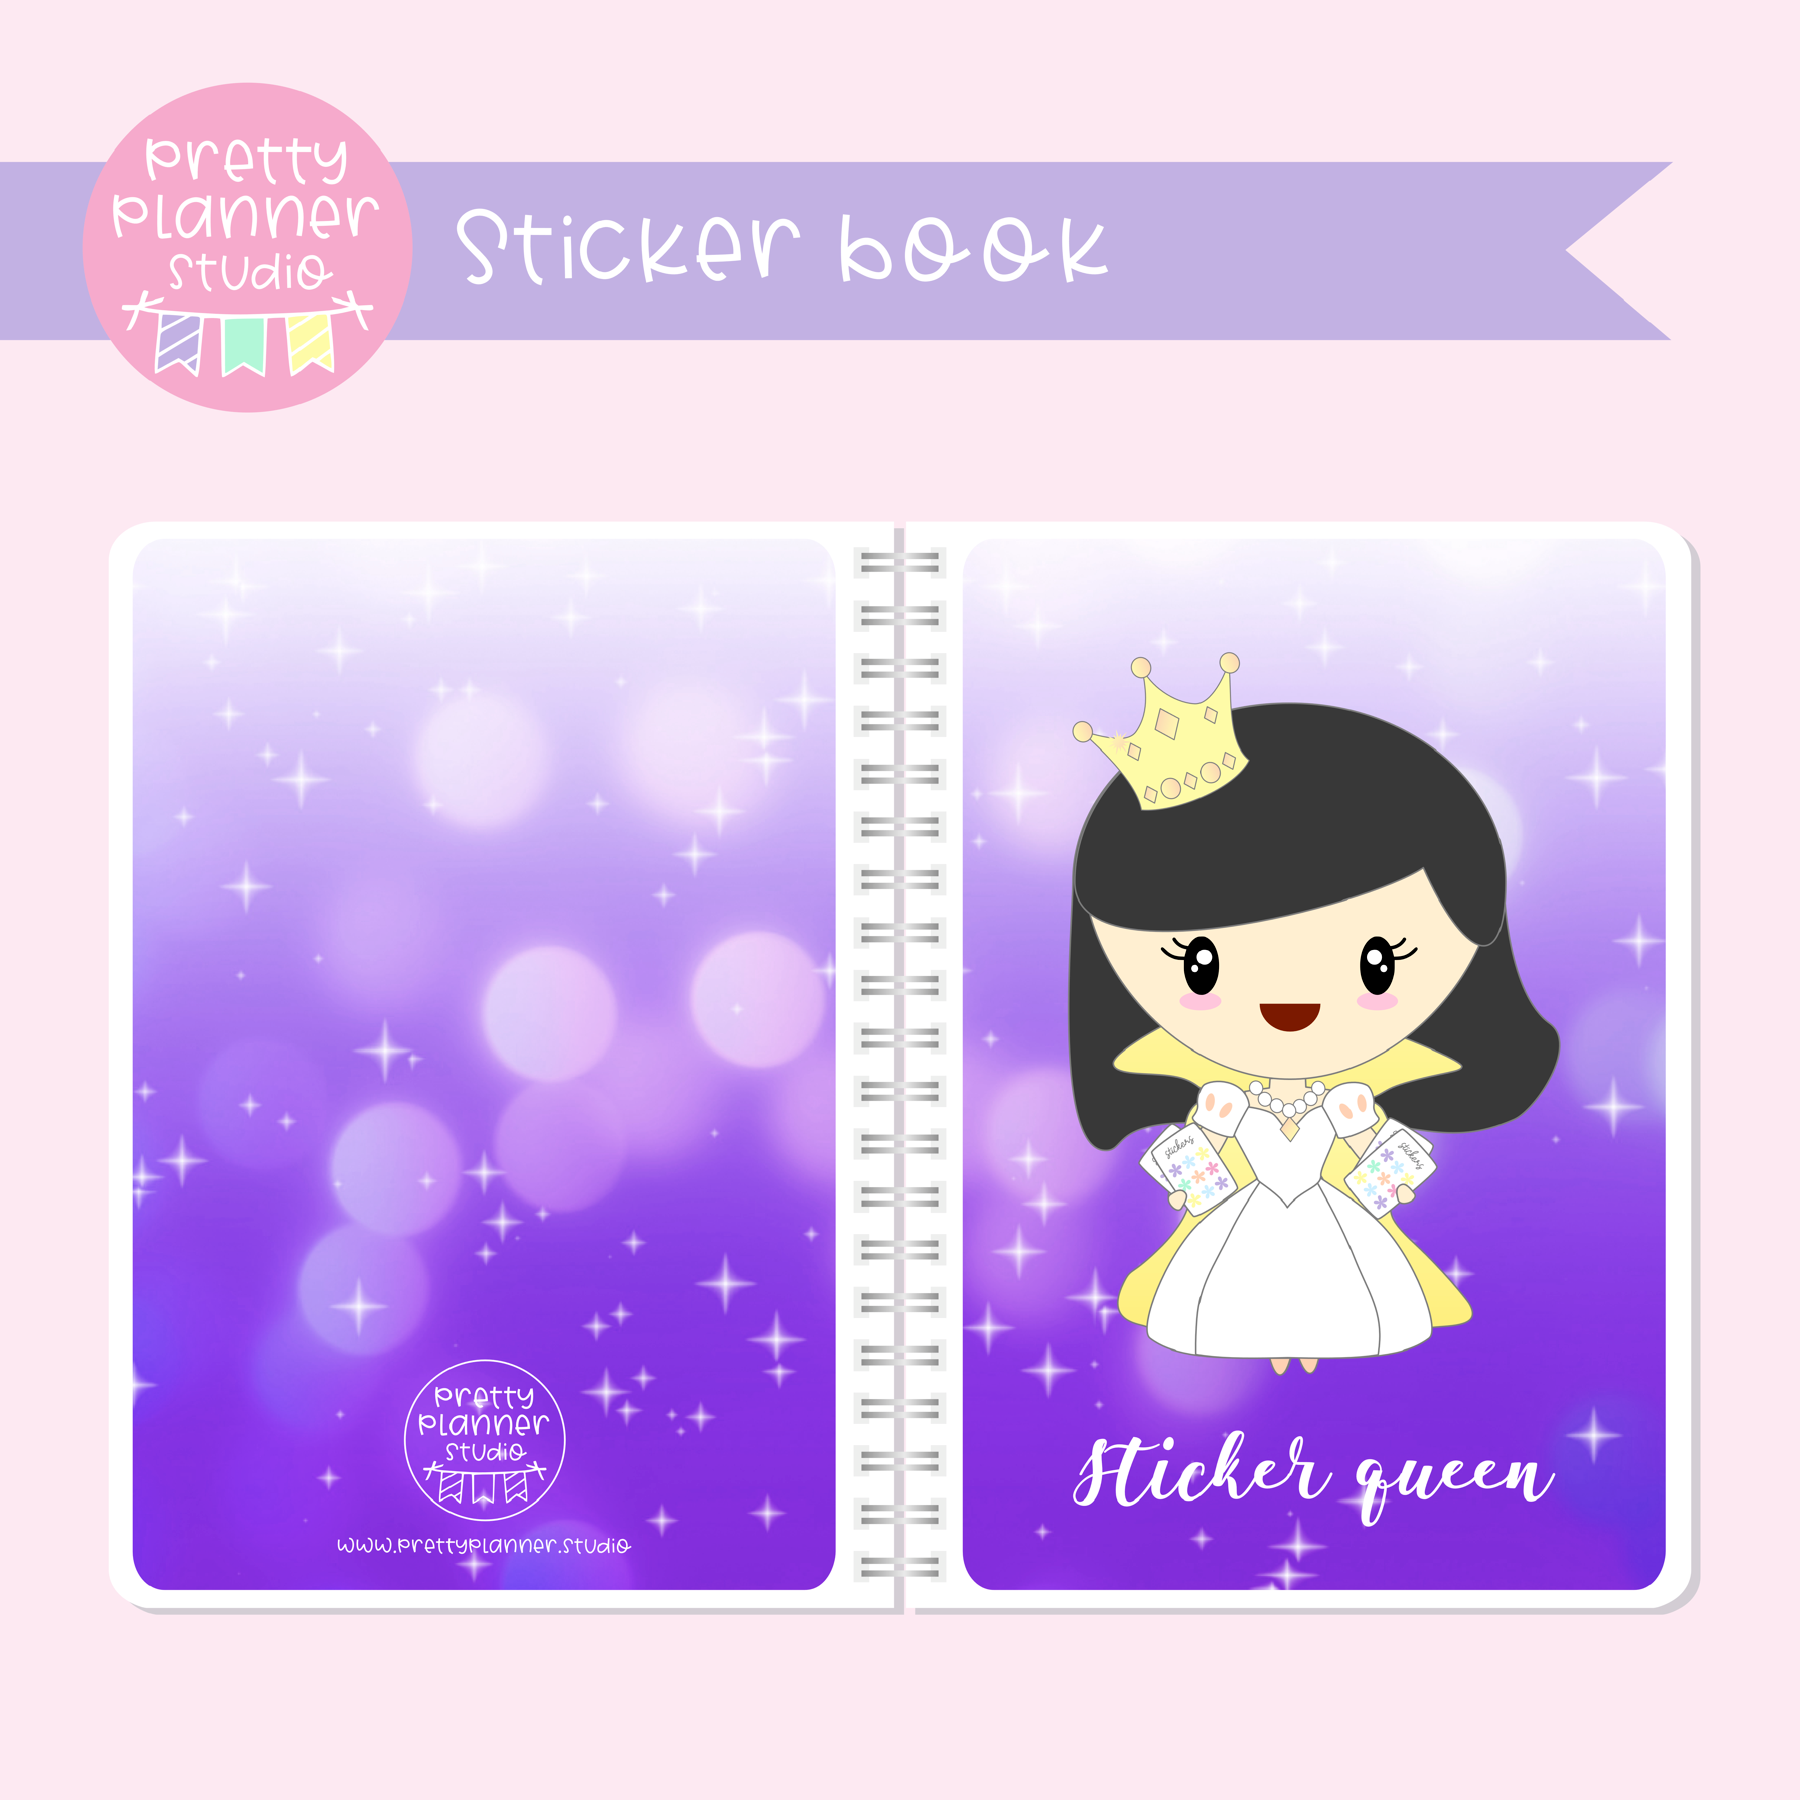 Planner girls - Mila - Sticker queen | sticker book | PG-007/2